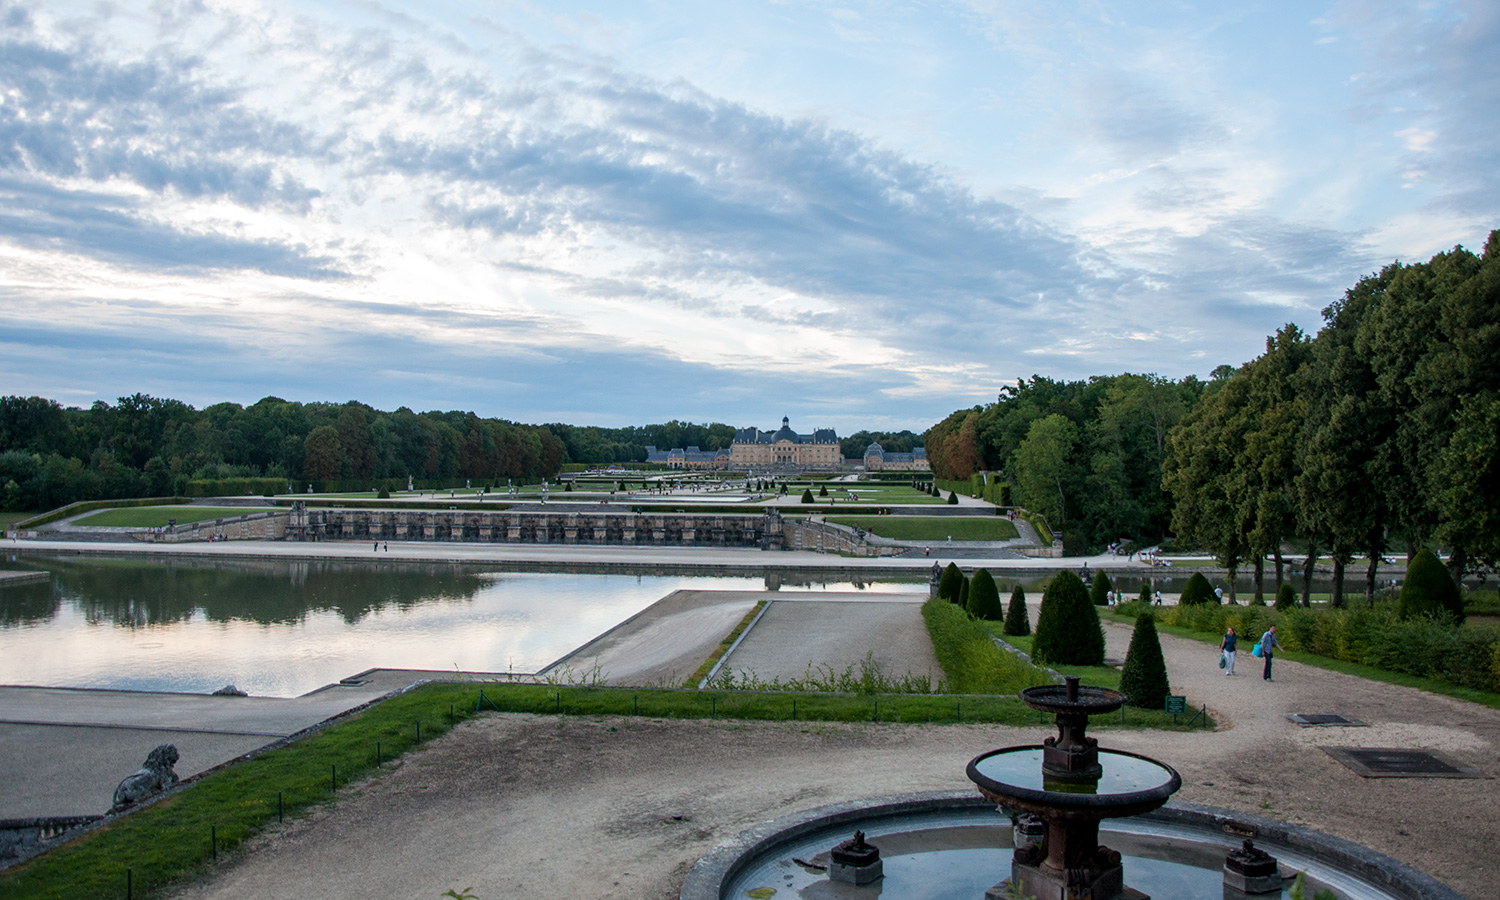 View from Hercules at Château de Vaux-le-Vicomte